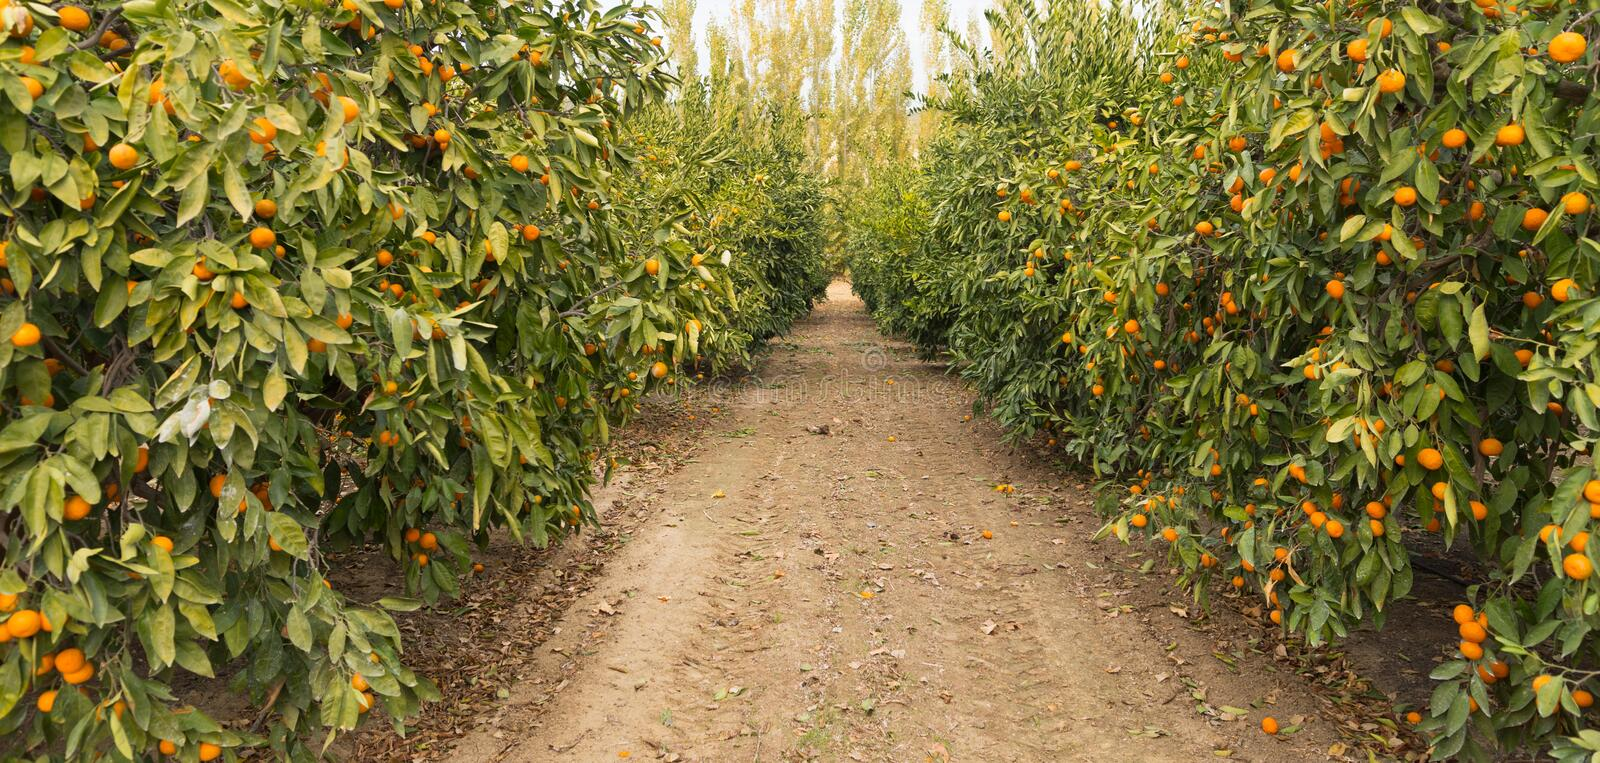 Raw Food Fruit Oranges Ripening Agriculture Farm Orange Grove. Looking down the path between trees in a productive orange grove stock image